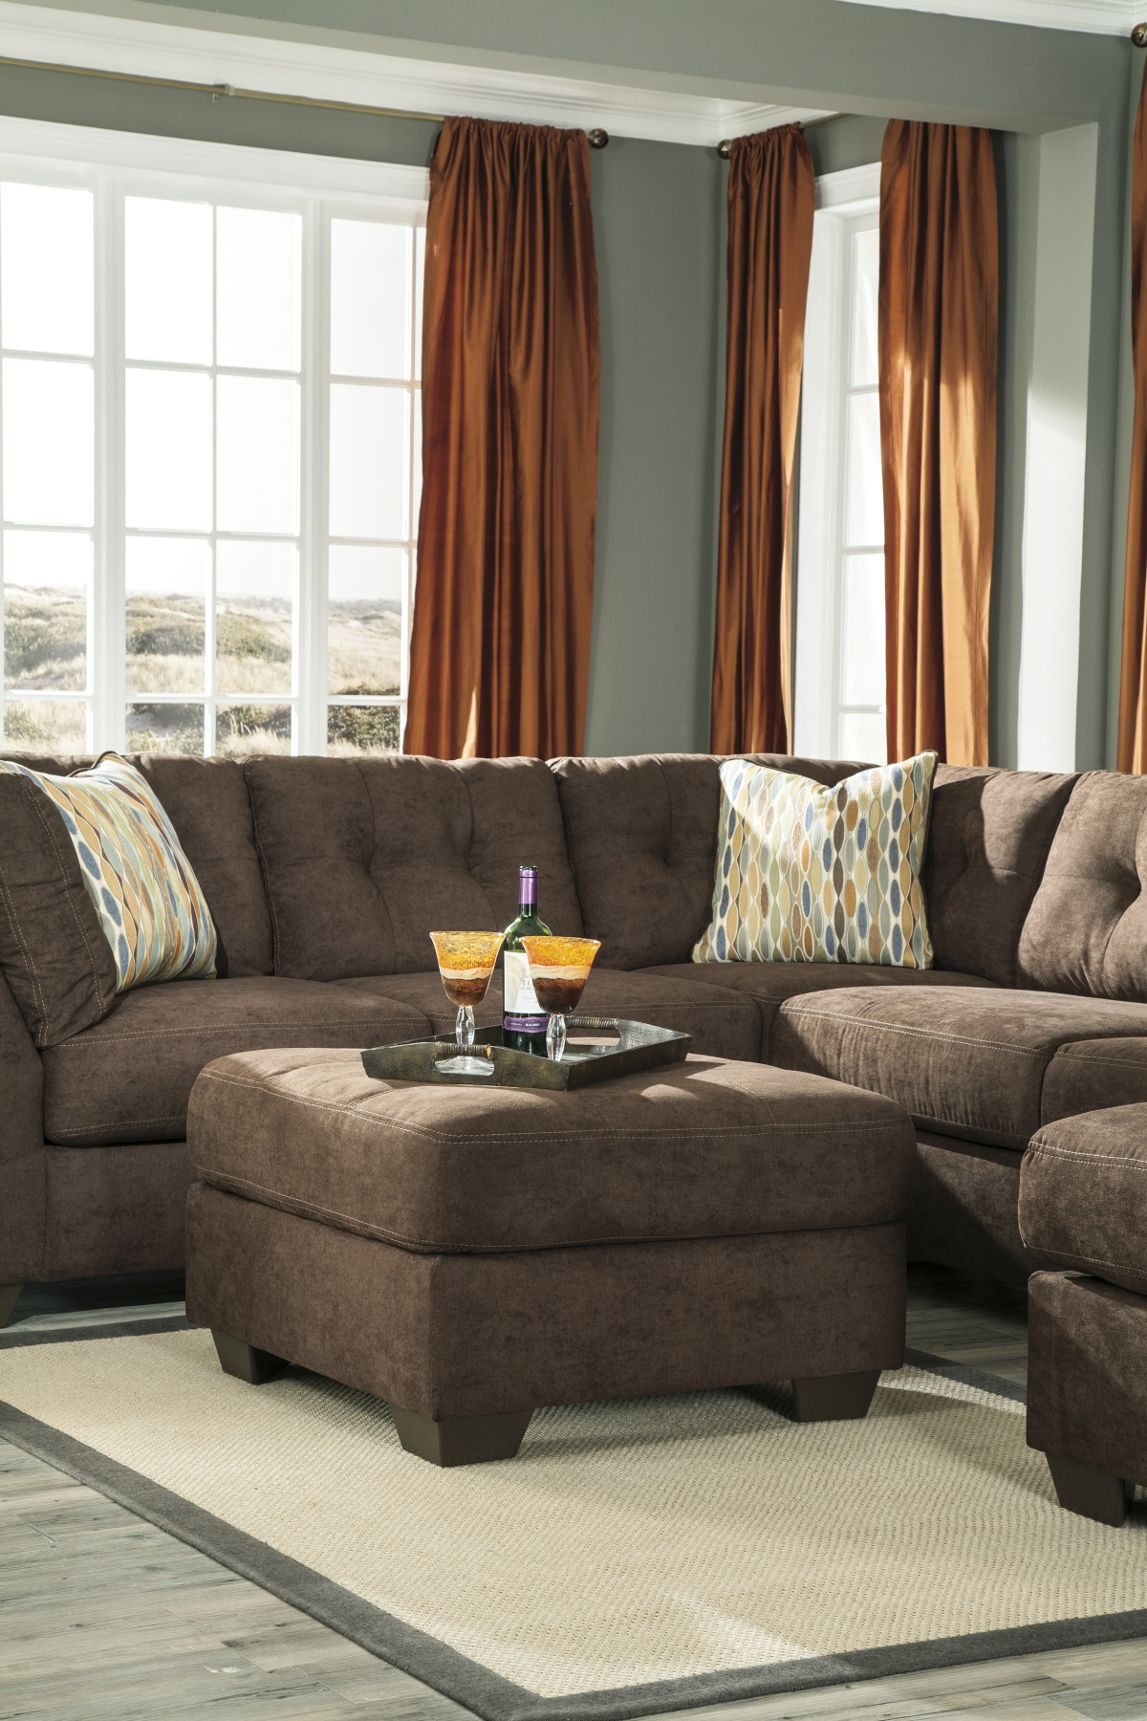 3 PCS Signature Design By Ashley 19700 Delta City Chocolate Sectional